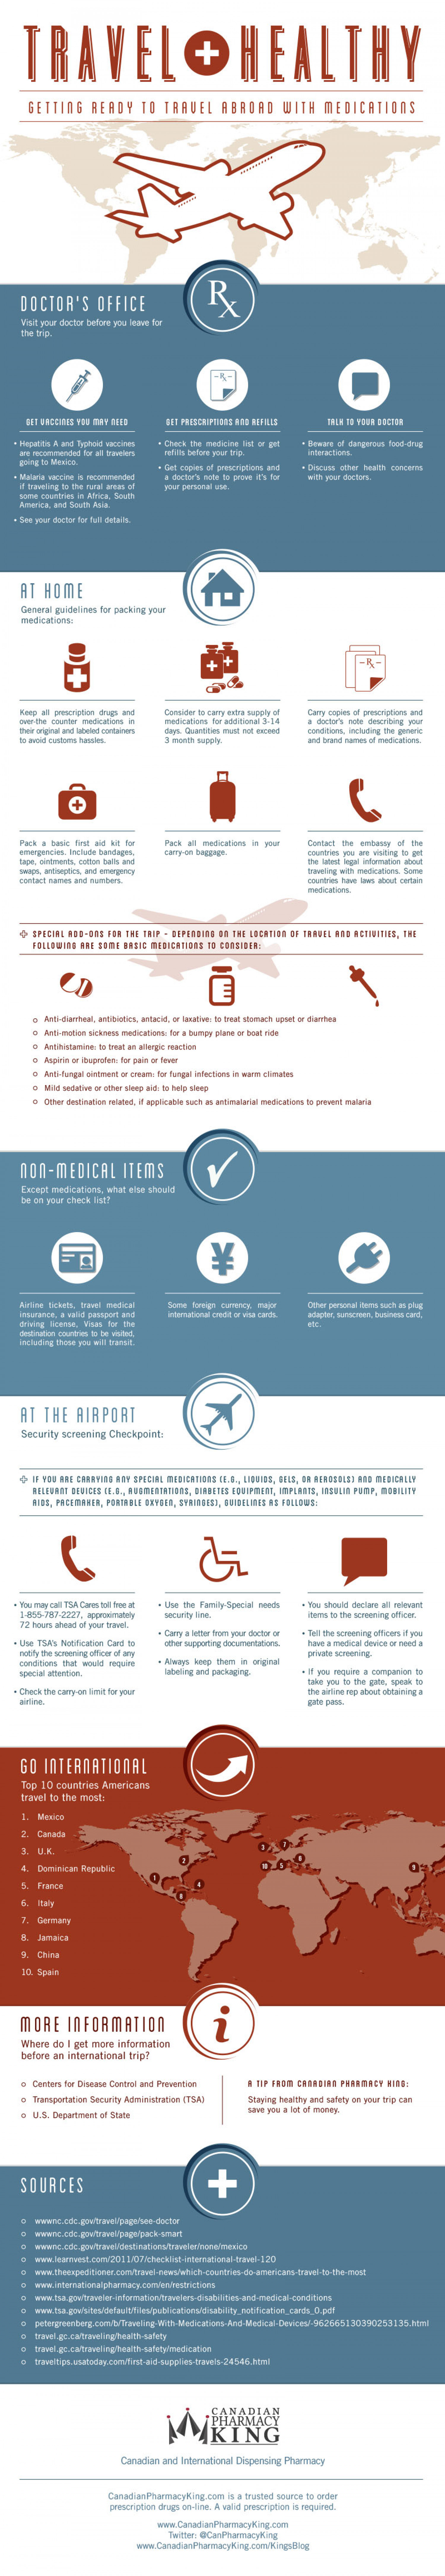 Travel Healthy Infographic